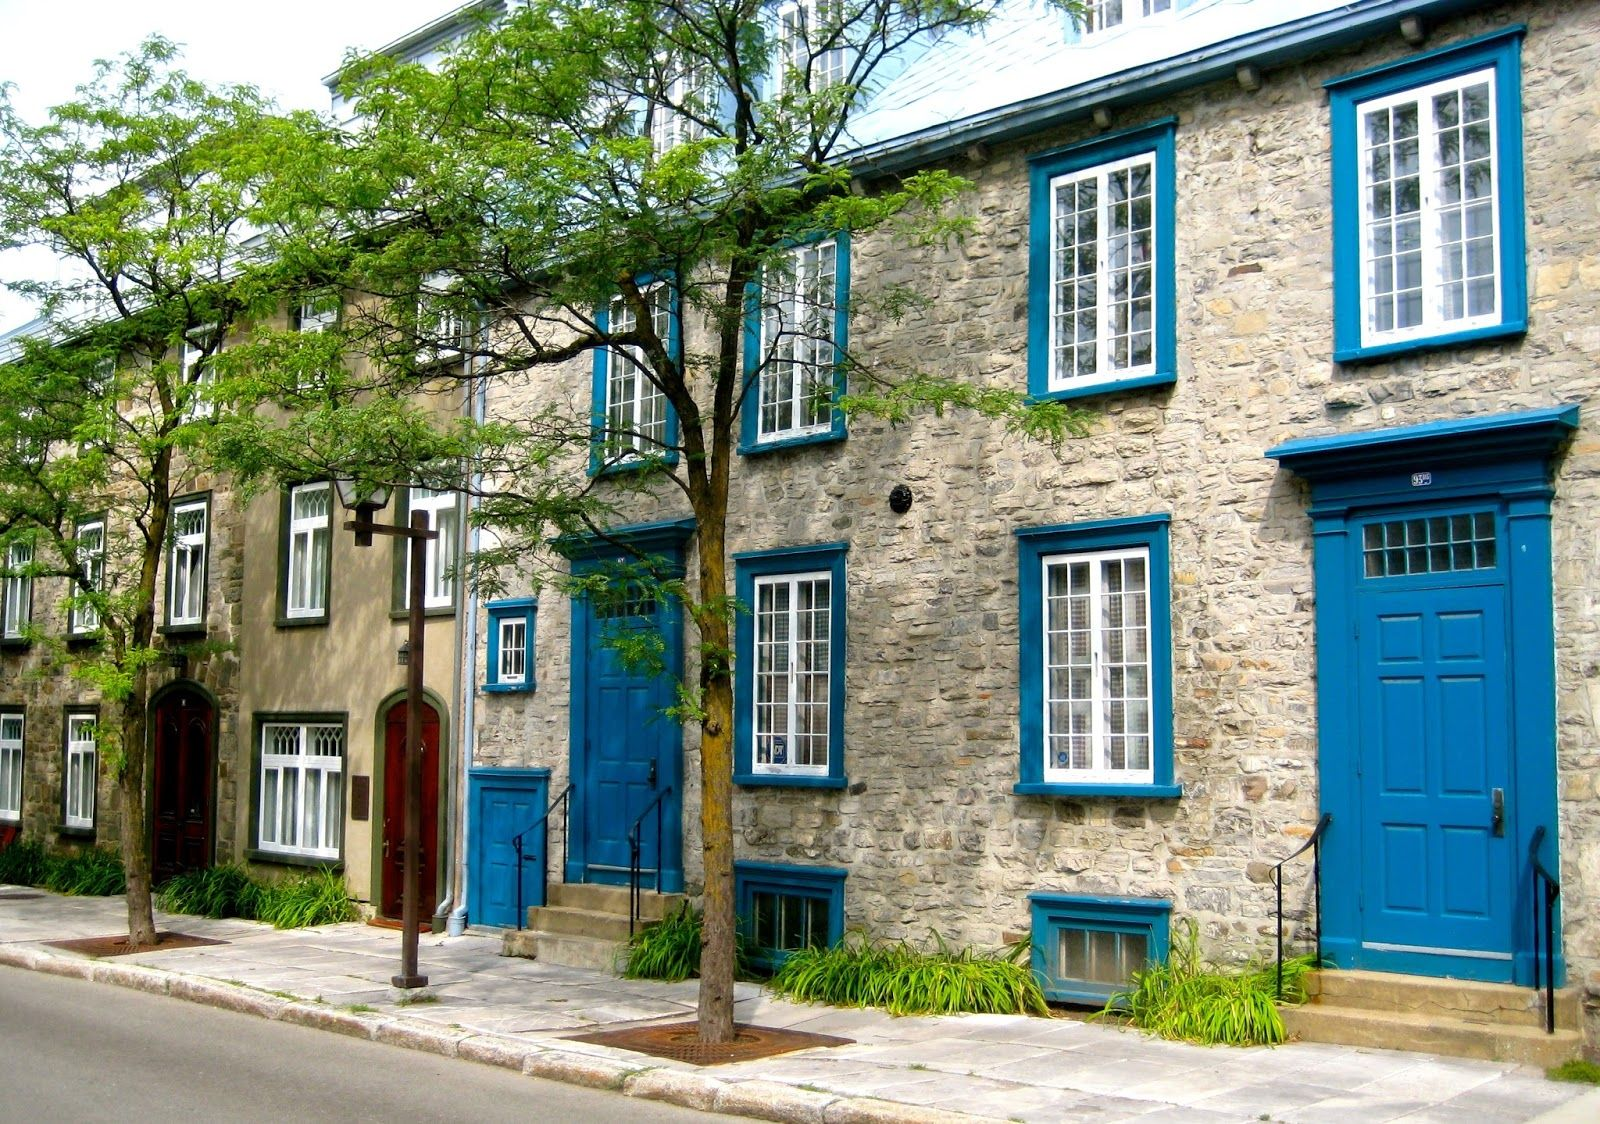 Pin by Nya OR on Québec City Reference | Pinterest | Quebec, Stone Houses In Quebec City on houses in espanola, houses in stoneham, houses in prince edward island, houses in catania, houses in st. petersburg, houses in grande prairie, houses in syracuse, houses in new amsterdam, houses in hanoi, houses in izmir, houses in tallinn, houses in valparaiso, houses in markham, houses in bridgetown, houses in trenton, houses in iqaluit, houses in ogdensburg, houses in salvador, houses in northwest territories, houses in old montreal,